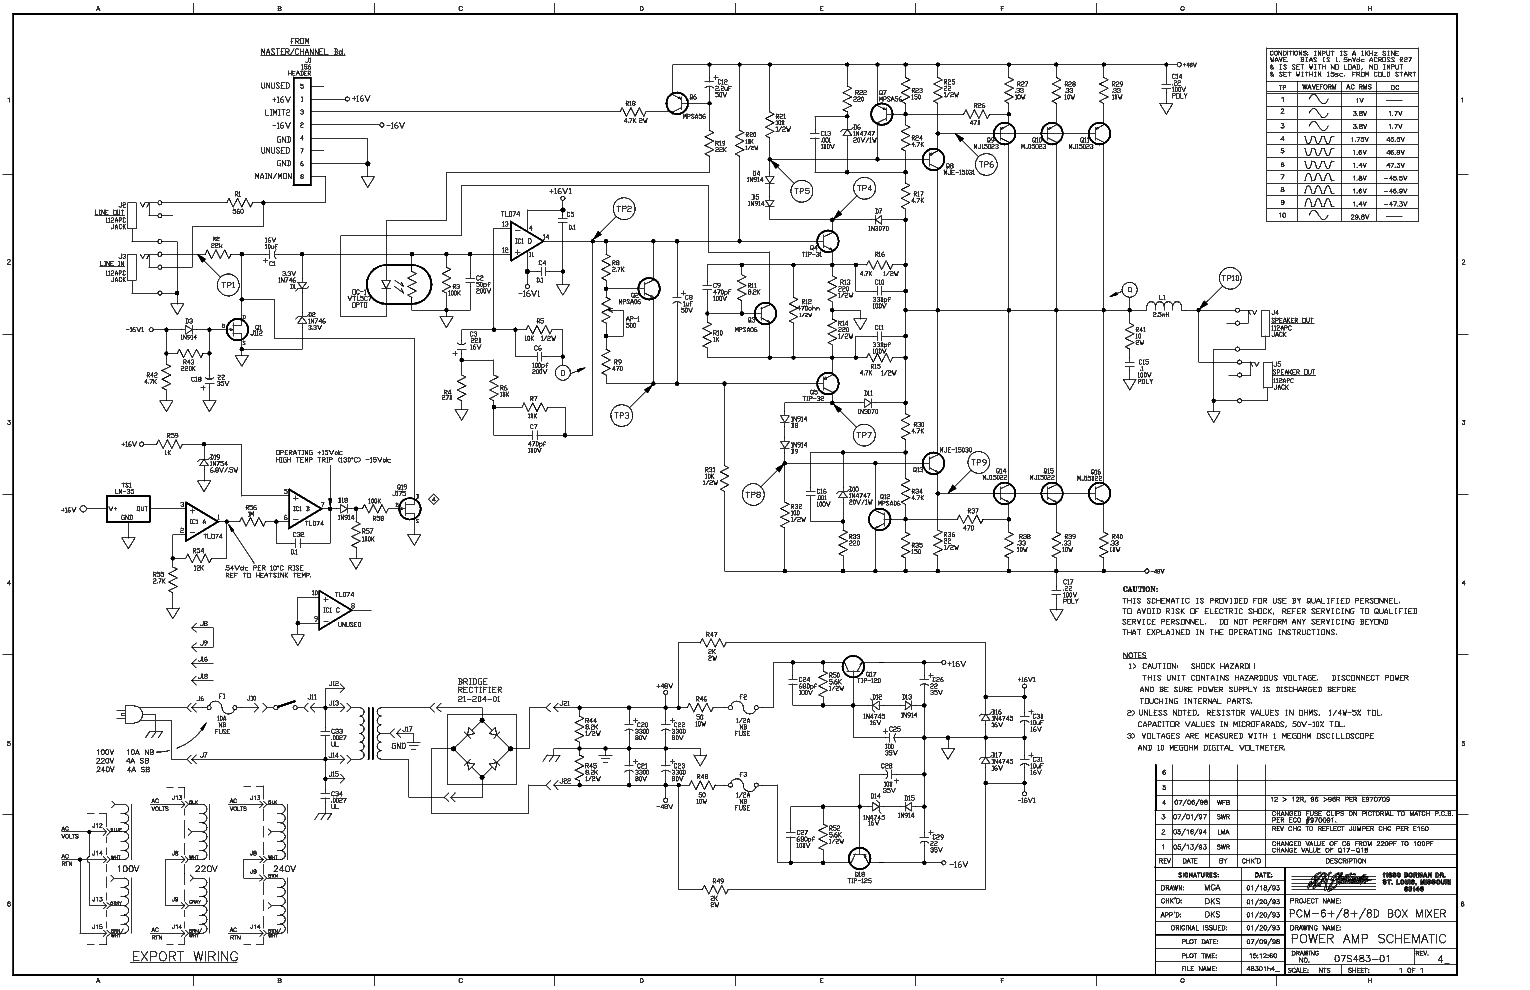 Chevy Caprice Classic Fuse Box Diagram Wiring Diagrams